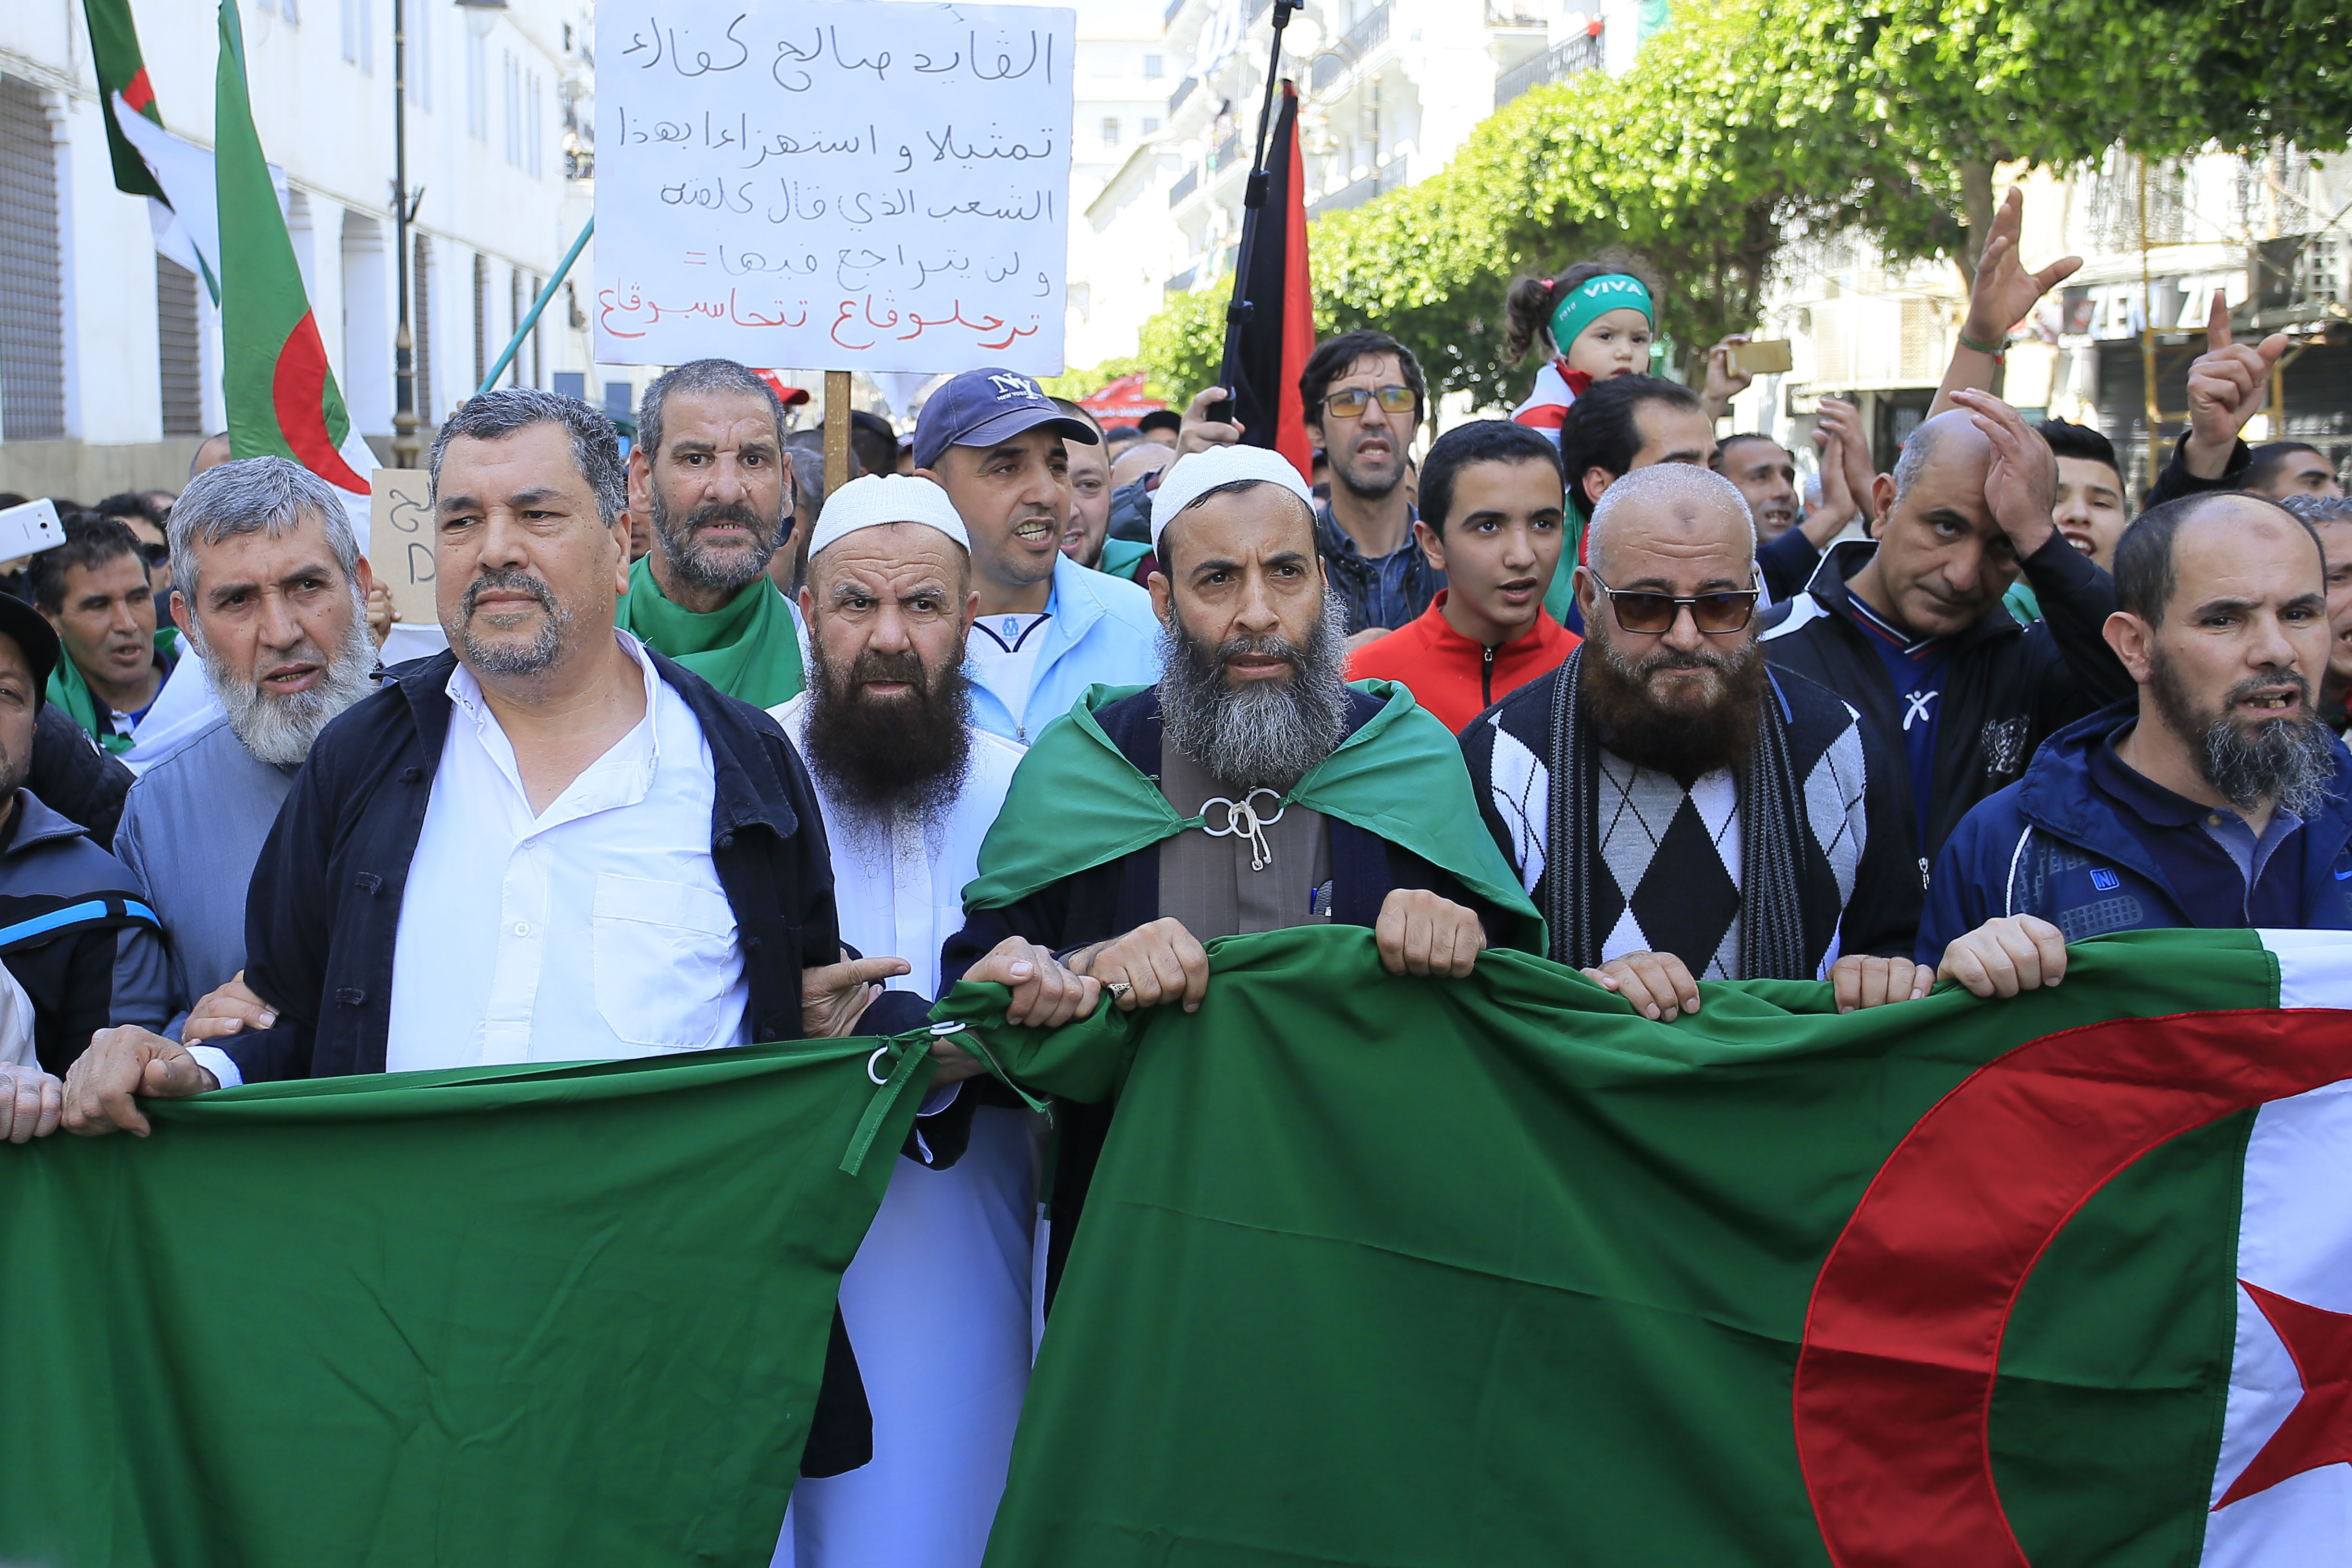 Demonstrators march with the Algerian flag during a protest in Algiers, Friday, April 26, 2019. Algerians are massing for a 10th week of protests against their country's ruling class, calling for the ex-president's brother to be put on trial. (AP Photo/Anis Belghoul)